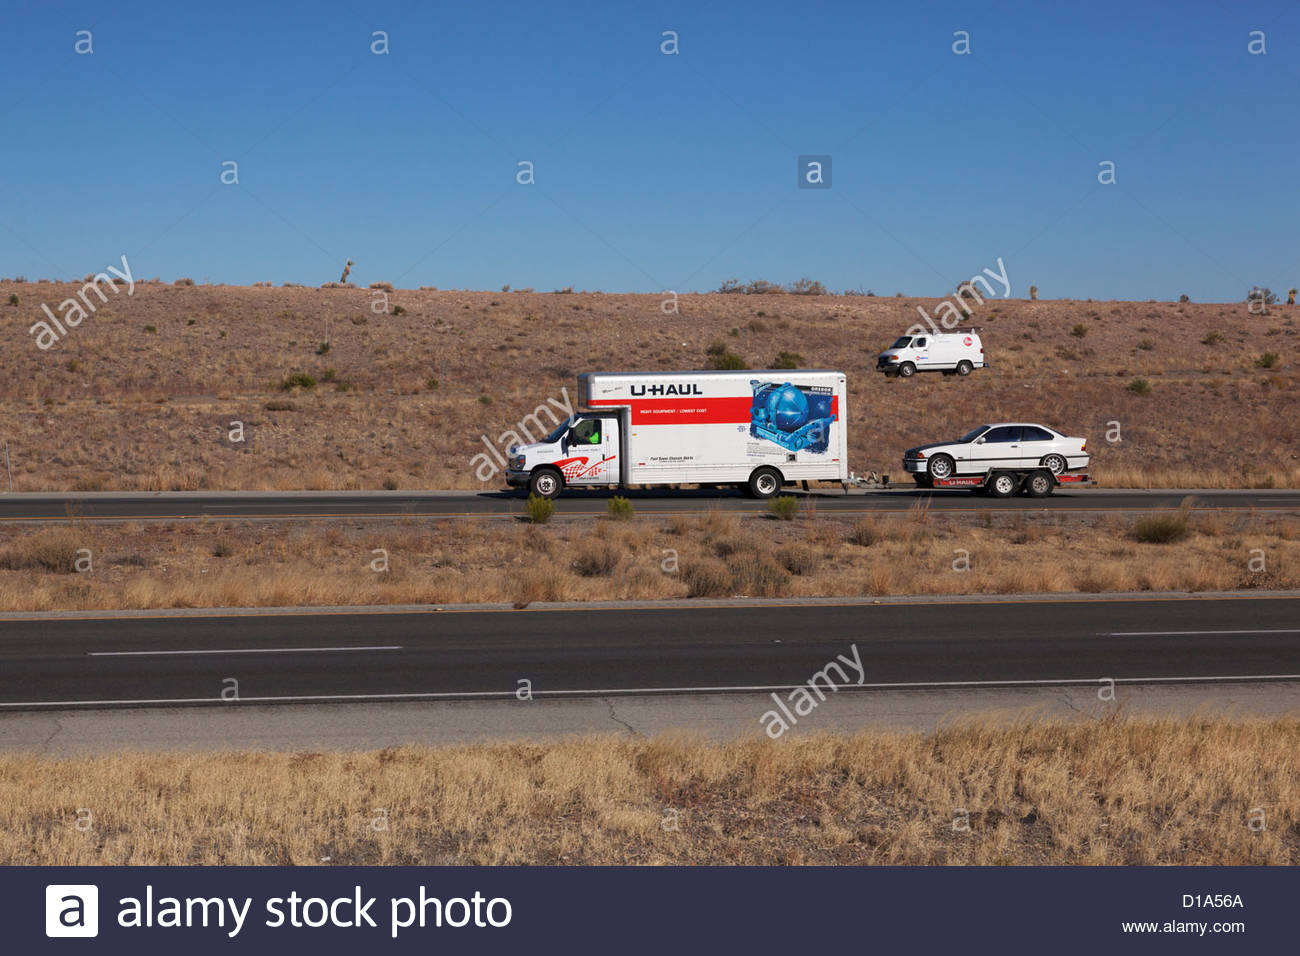 u-haul-truck-pulling-trailer-with-car-arizona-2-drivers-visible-D1A56A.jpg